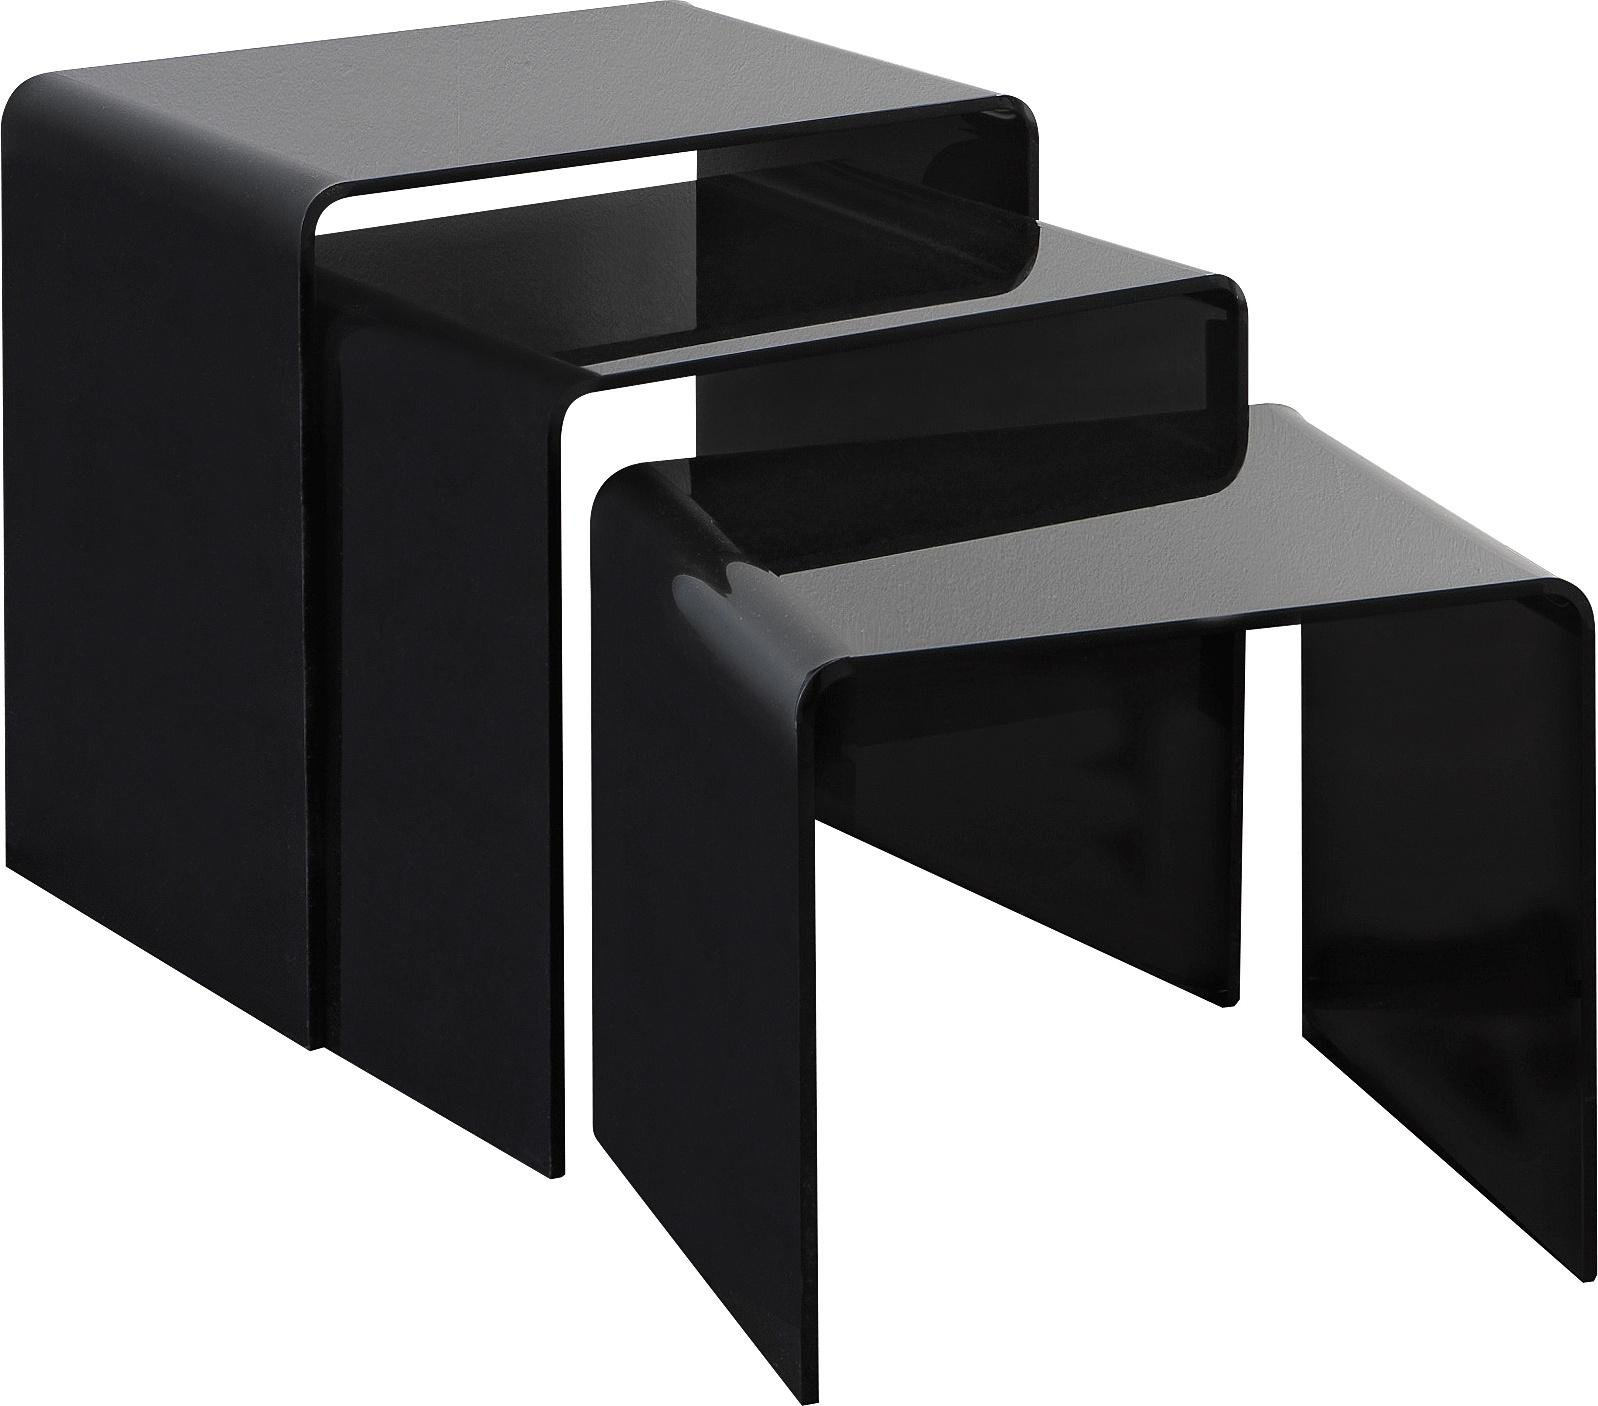 Buy Hygena Mistral Nest of 3 Tables - Black Acrylic at Argos.co.uk - Your Online Shop for Coffee